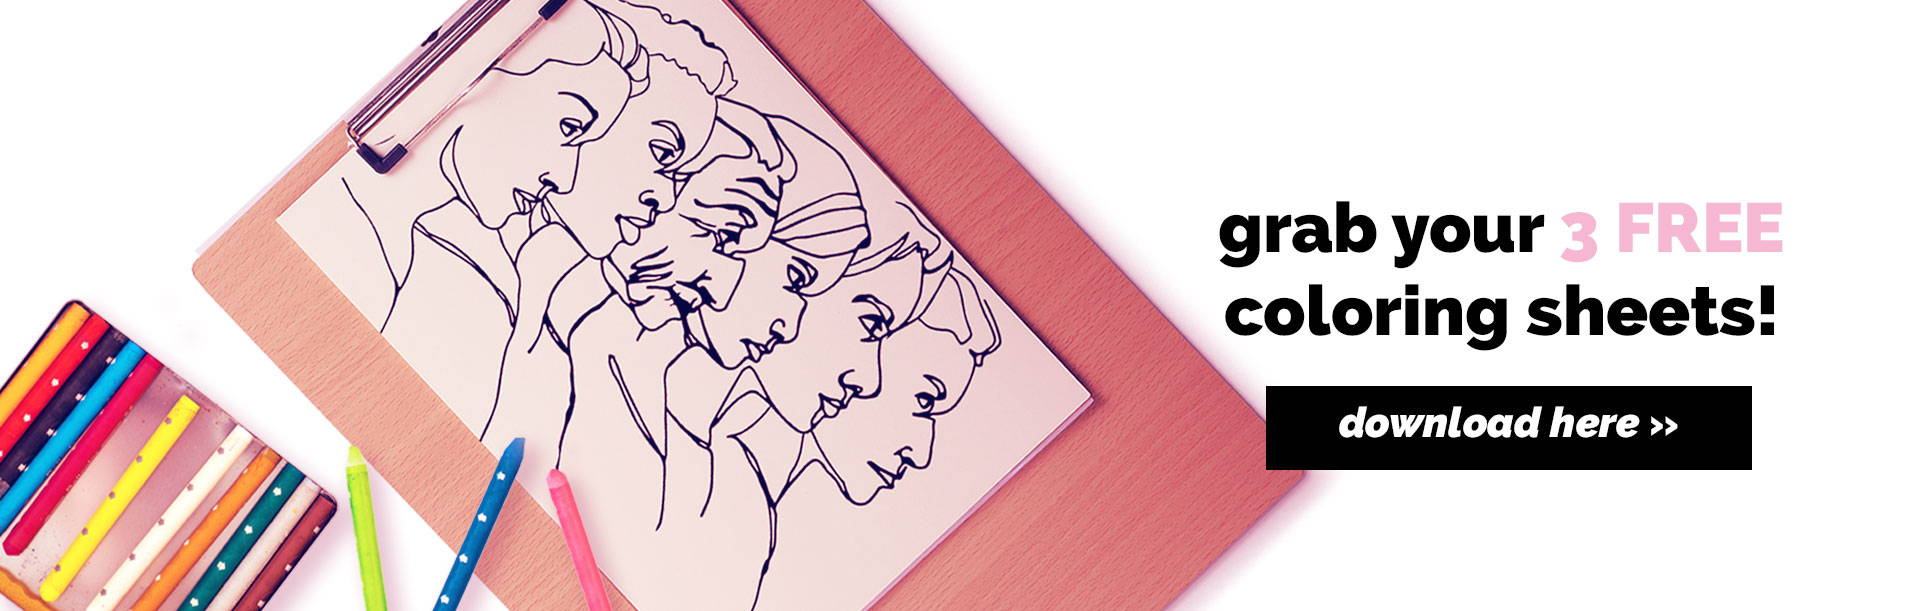 Grab your 3 free coloring sheets now! Click to Download